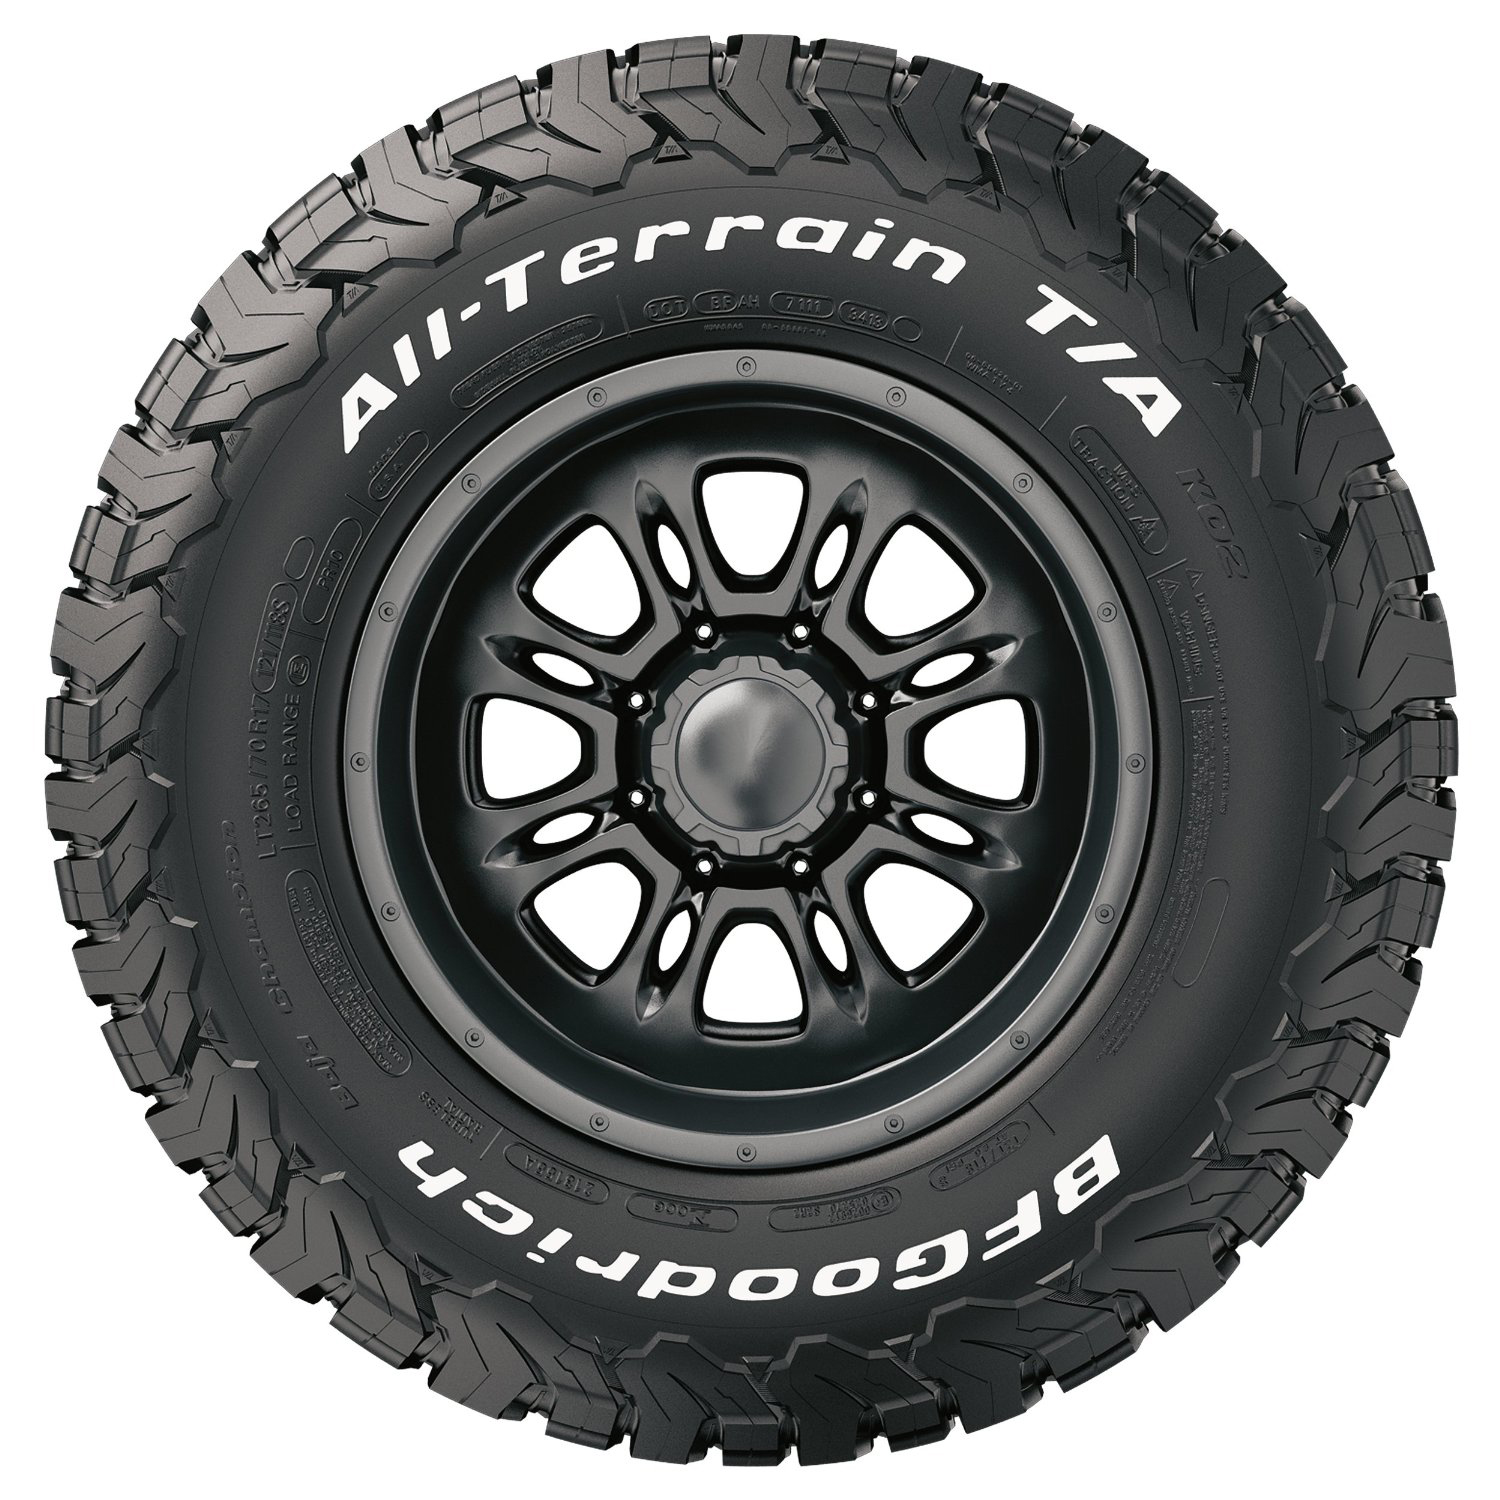 BF Goodrich All-Terrain T A KO2 Tire LT265 75R16 10 123 120R by BFGoodrich